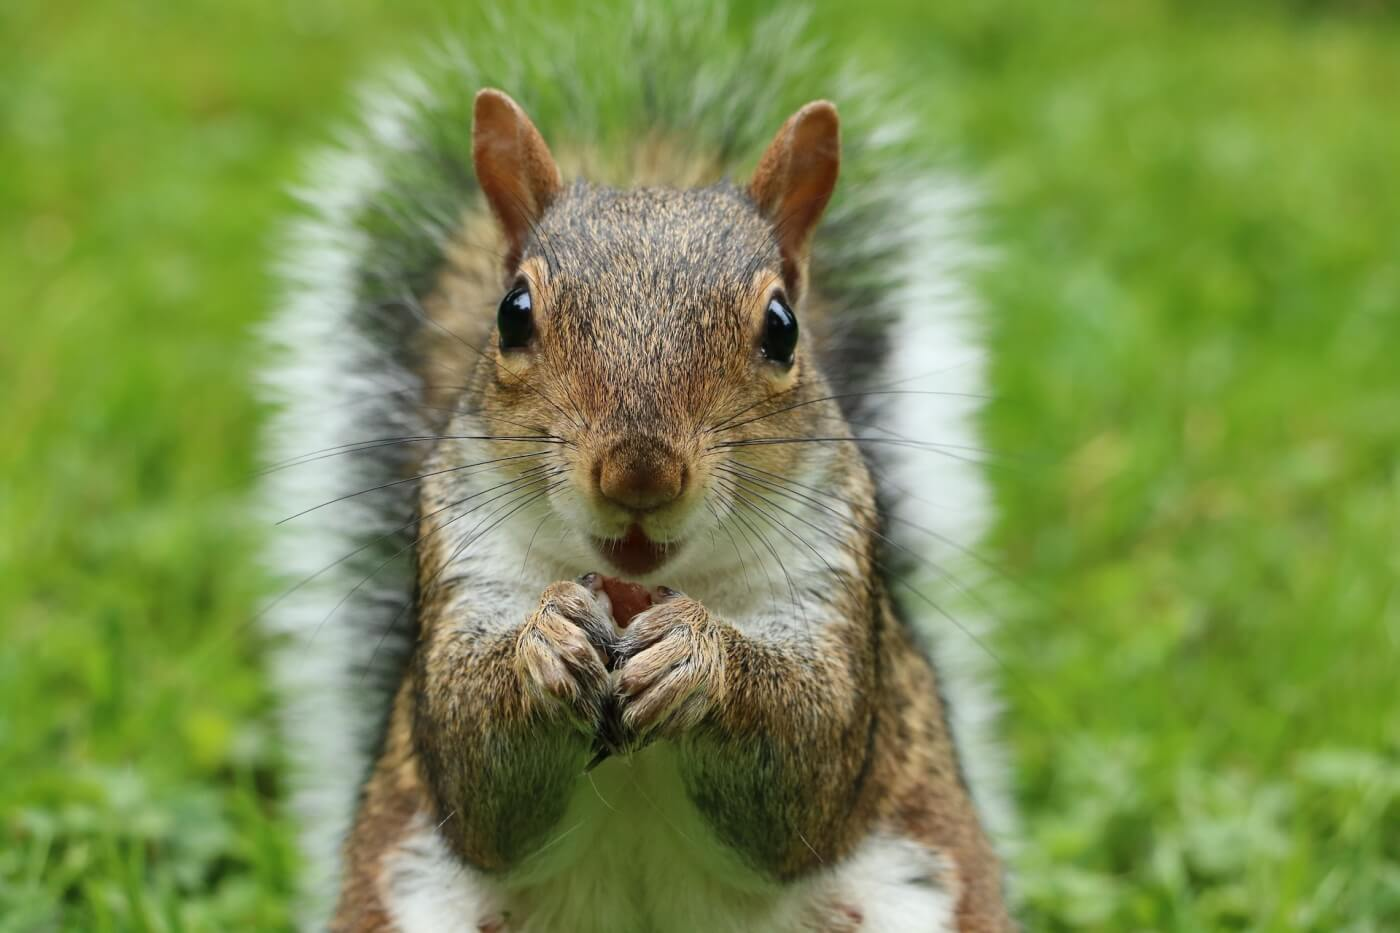 culling grey squirrels is unjustifiable both scientifically and